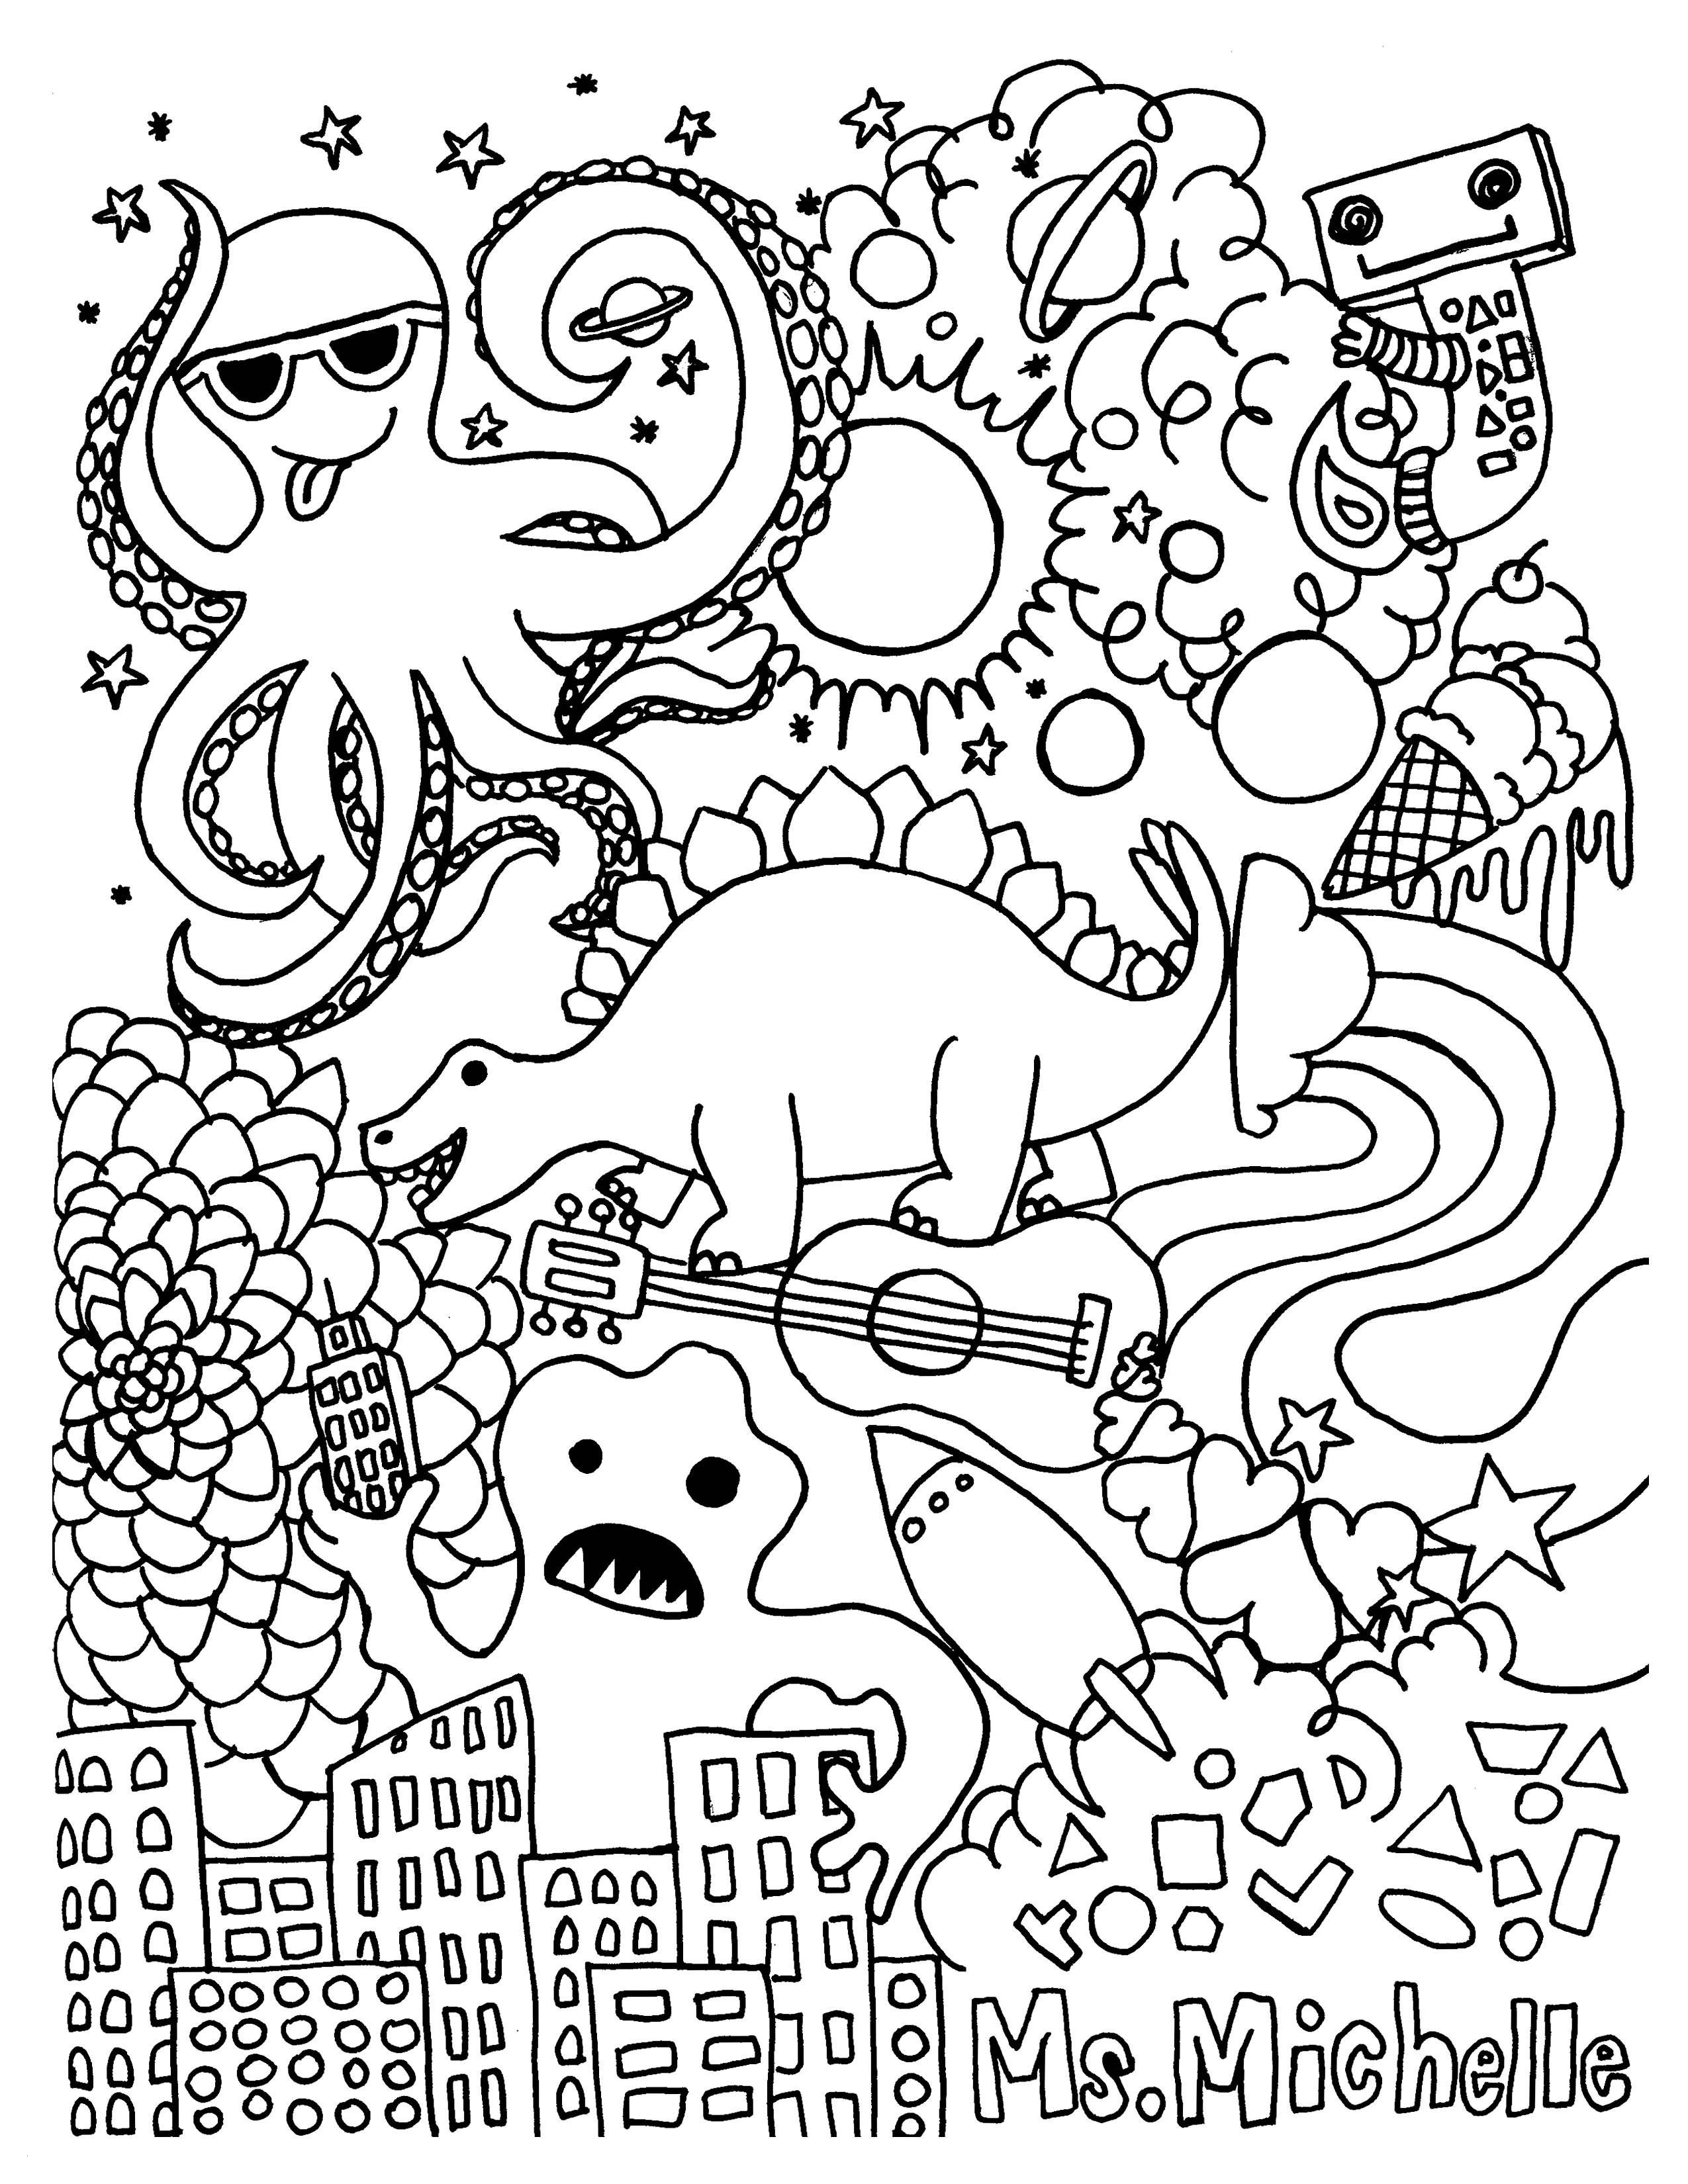 The Ten Commandments Coloring Pages Printable  Gallery 19t - To print for your project